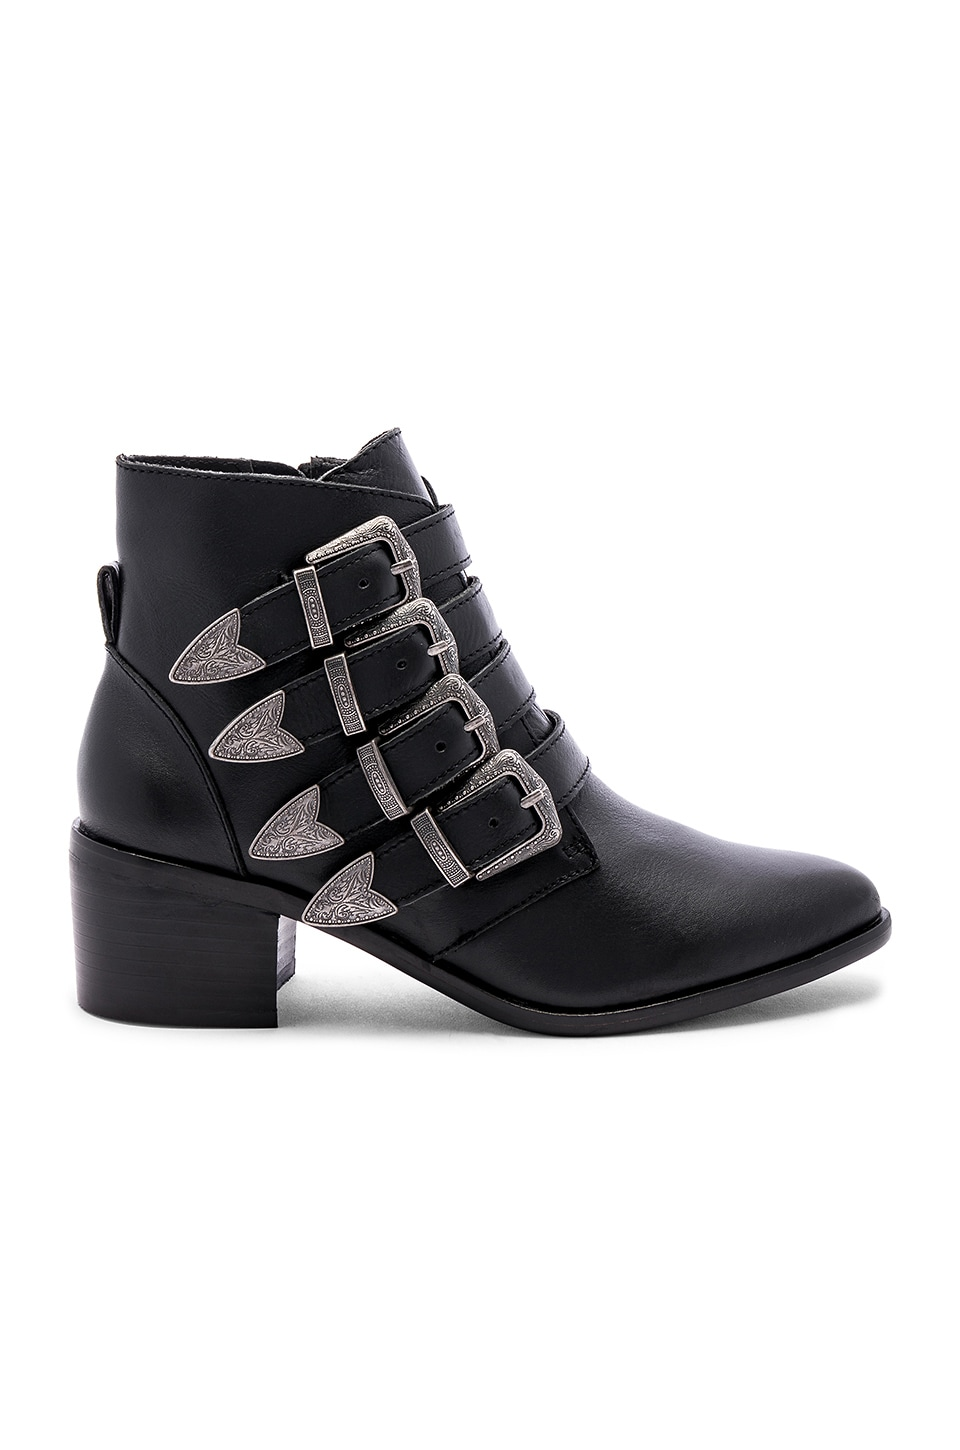 ffd47d7a655 Steve Madden Billey Bootie in Black Leather | REVOLVE